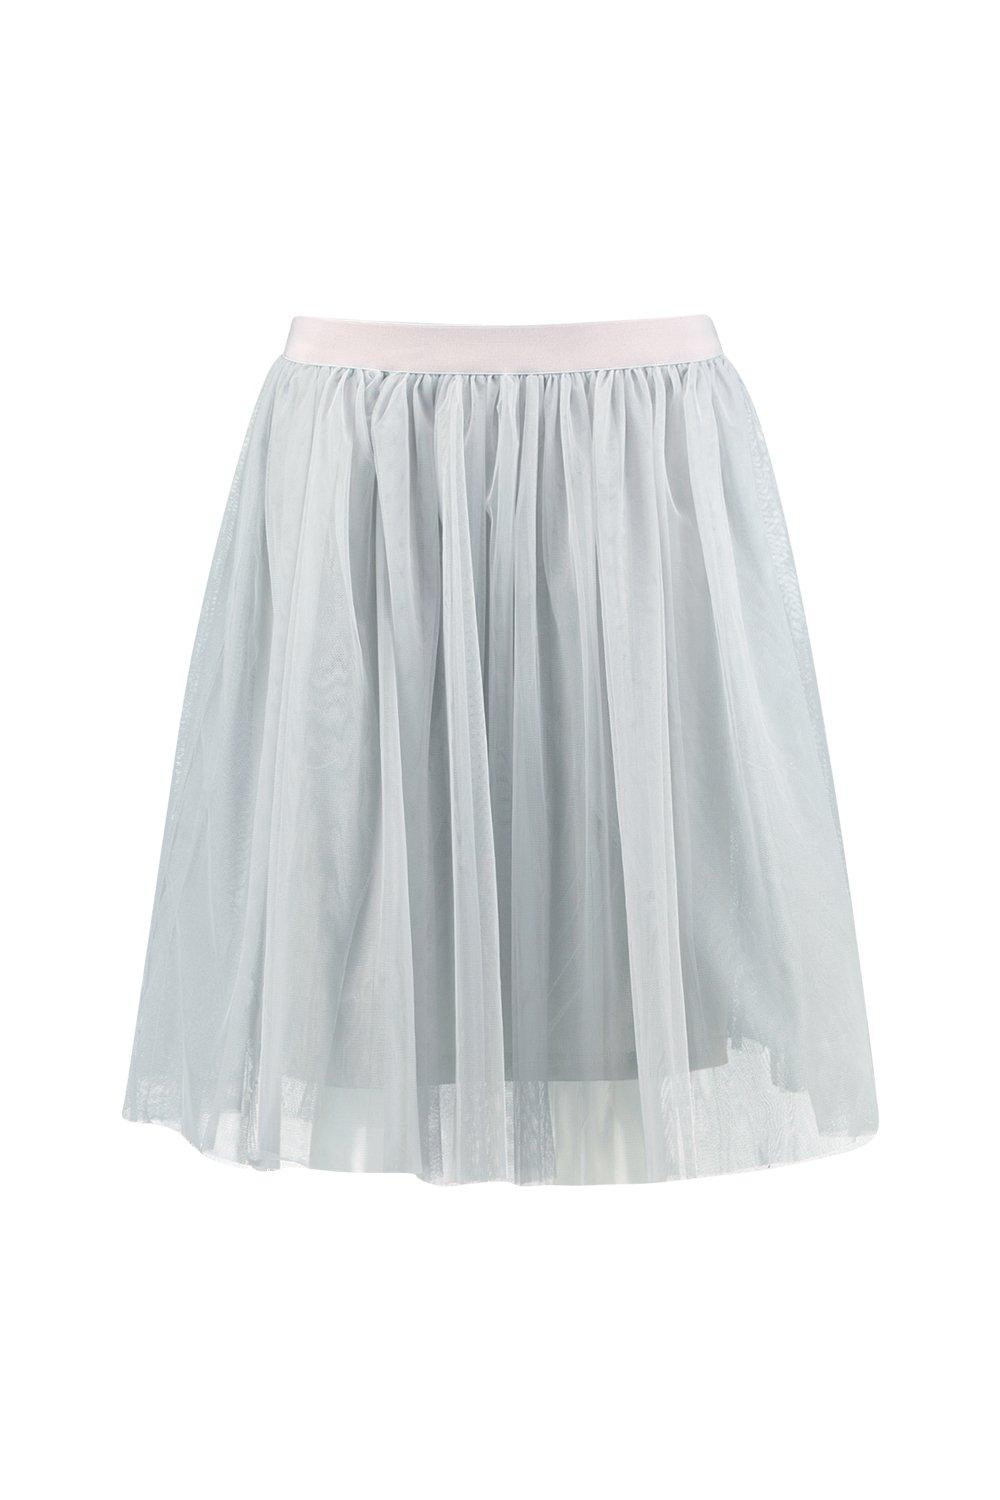 boohoo womens boutique amara knee length tulle skirt ebay